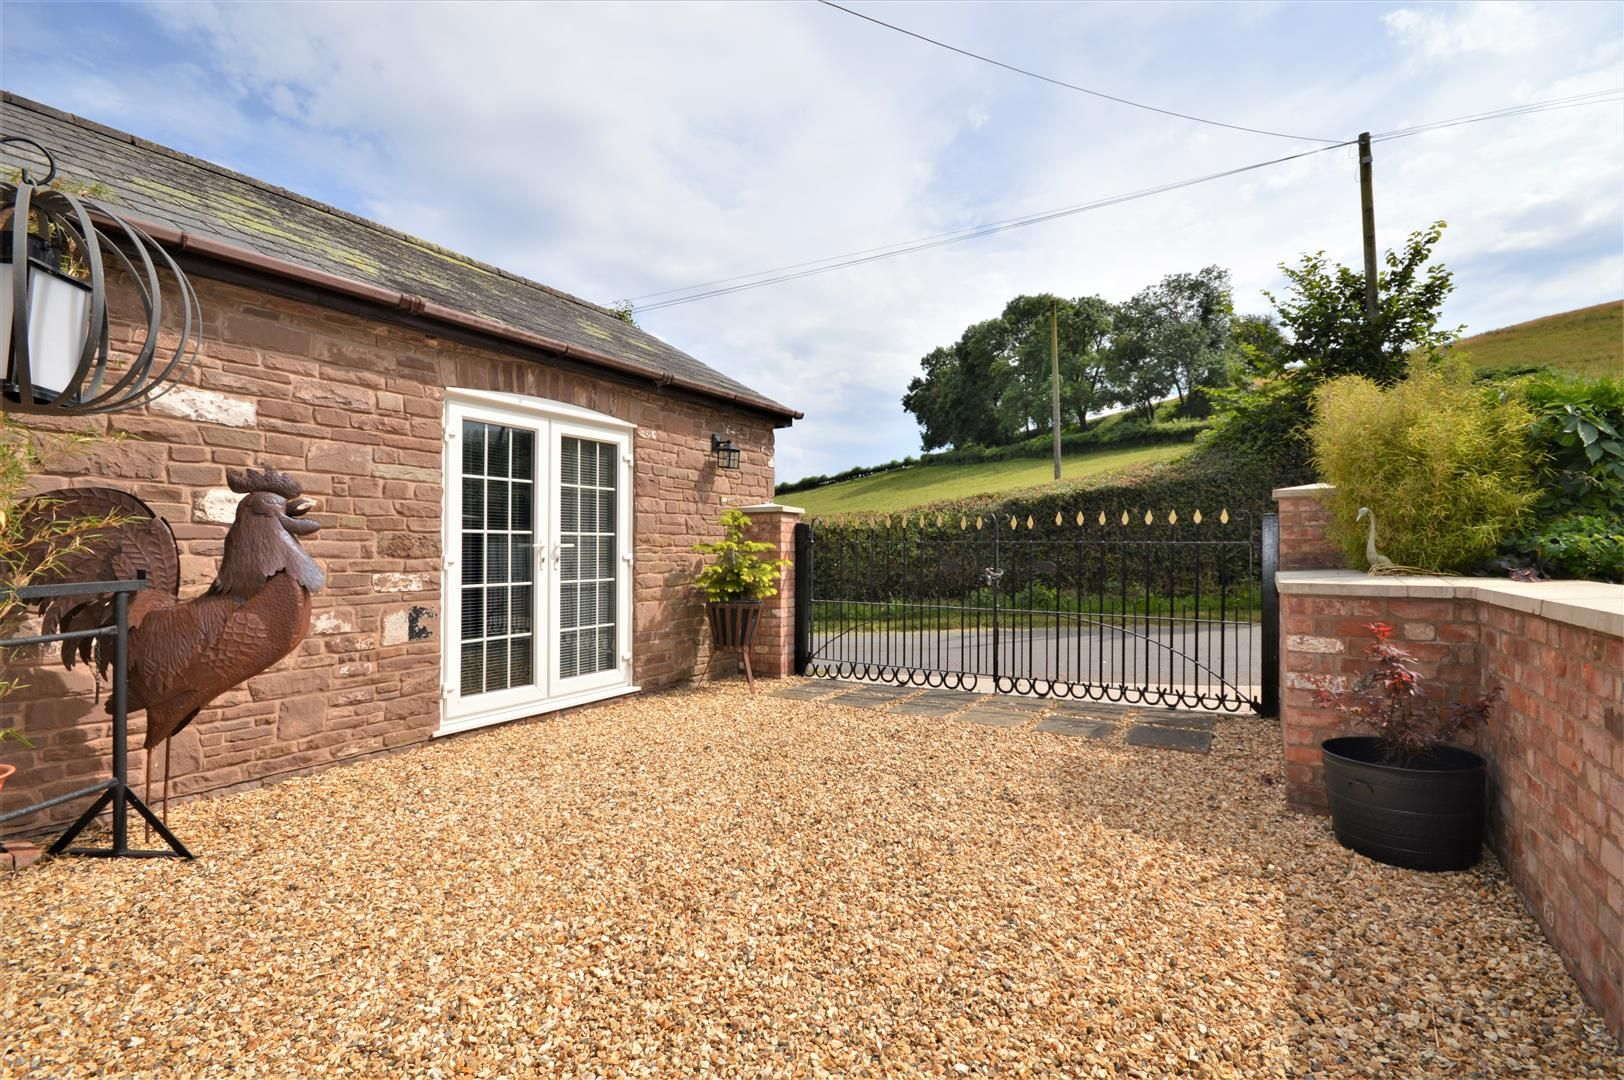 3 bed detached for sale in Orcop  - Property Image 20